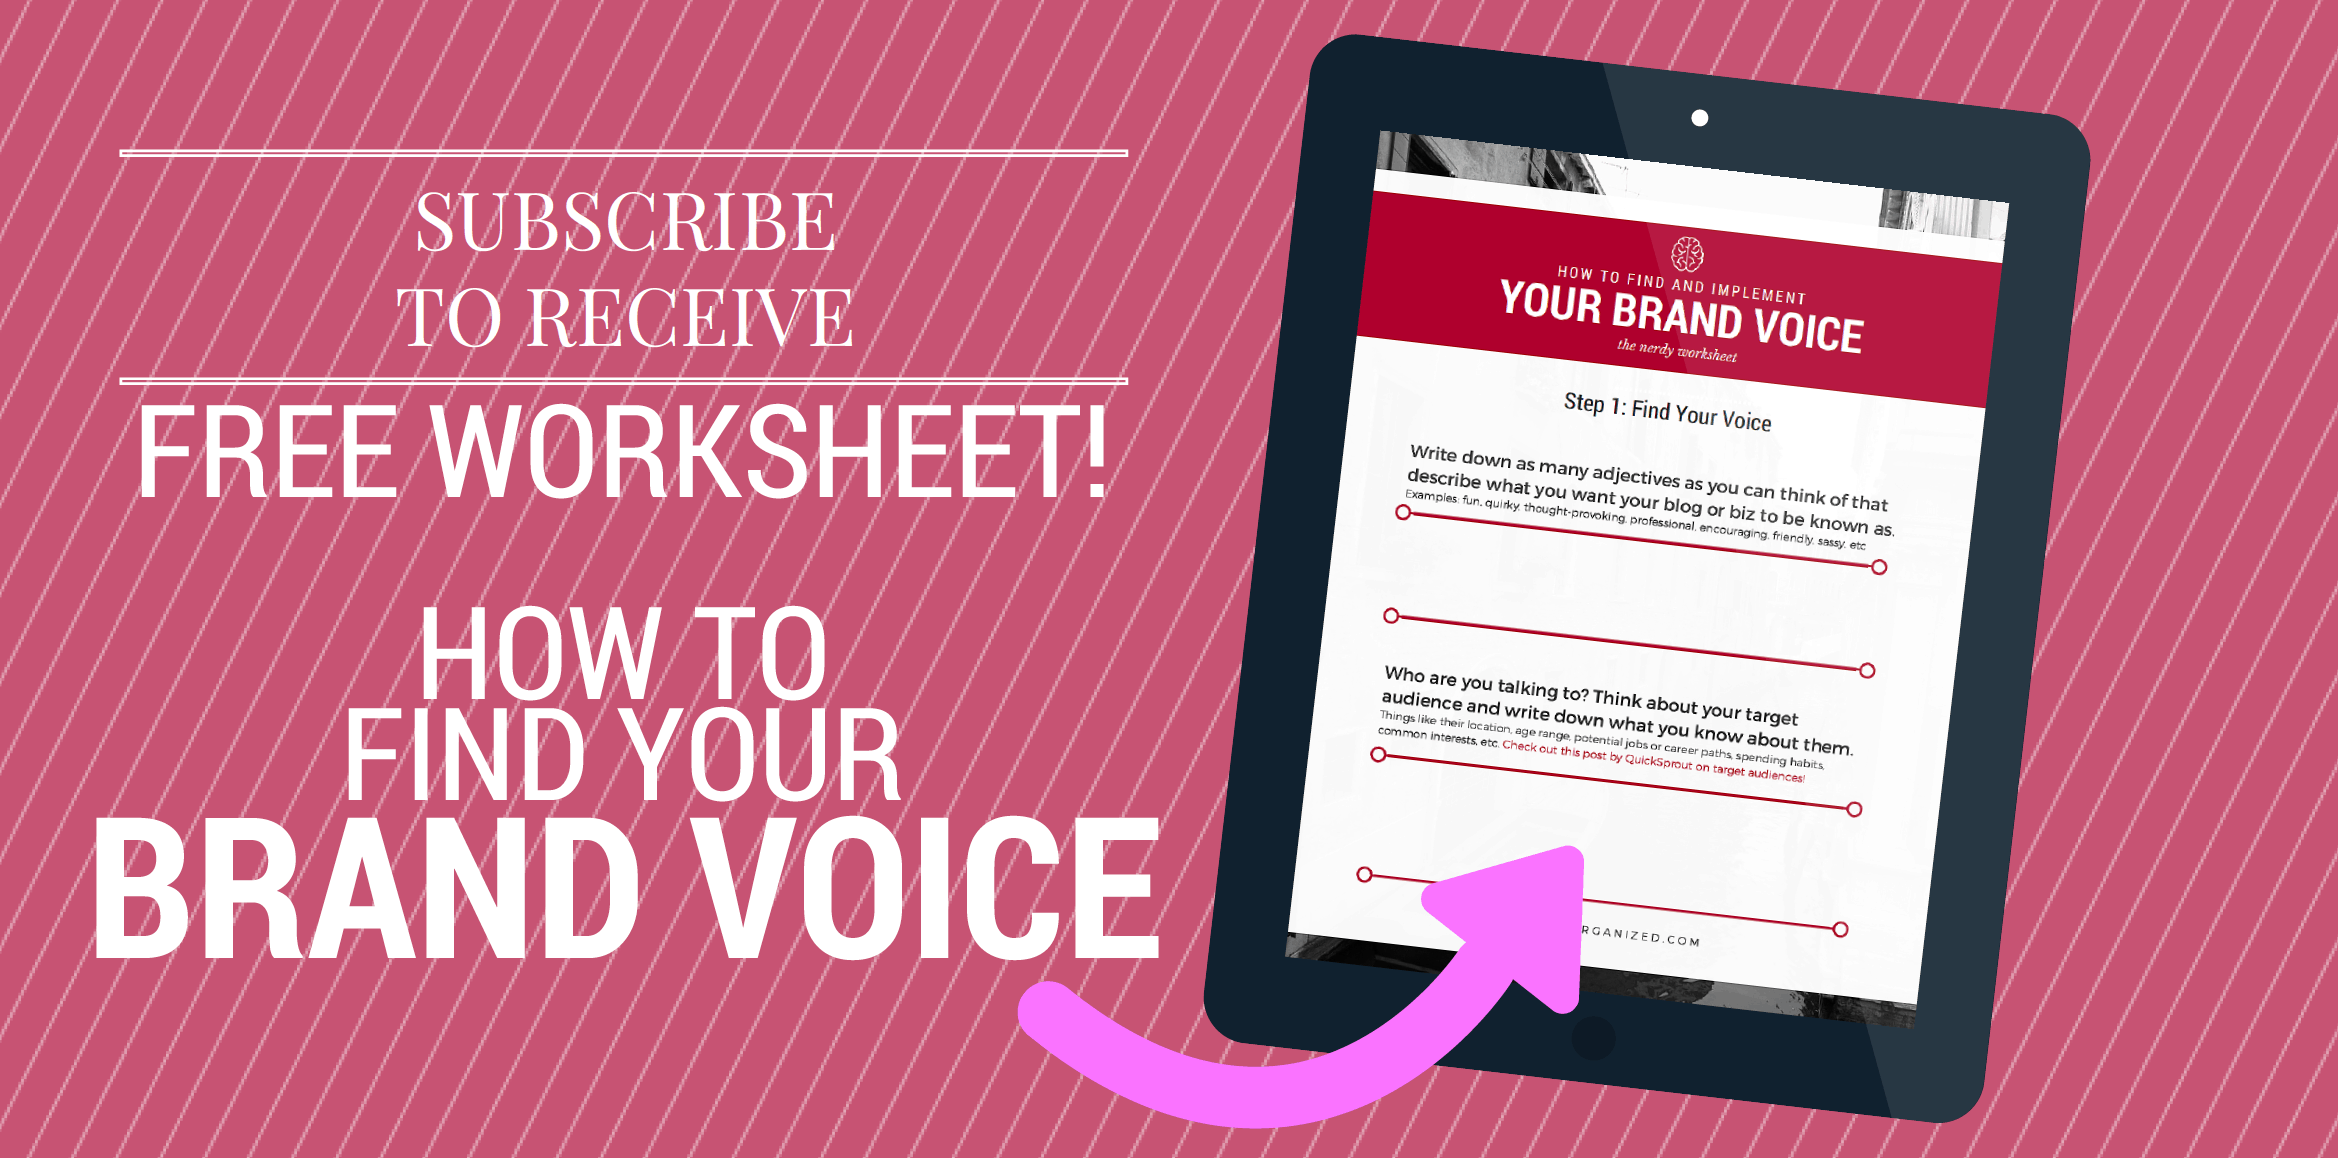 about-how-to-find-brand-voice-worksheet